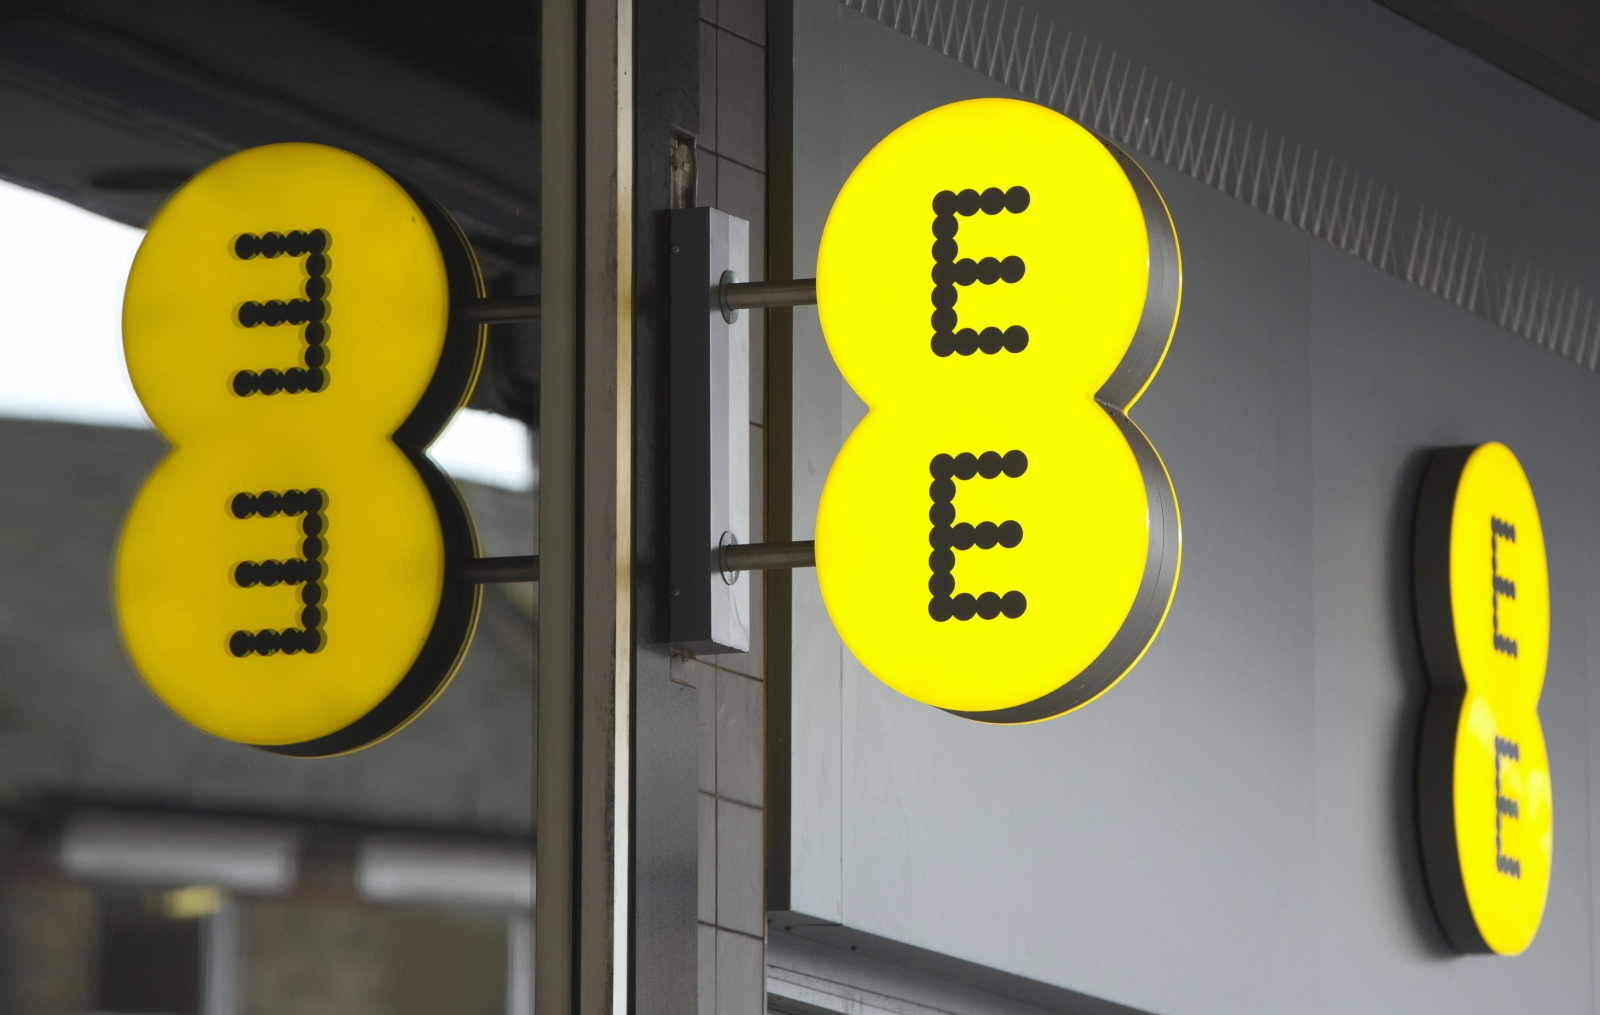 EE unleashes 'next phase' of 4G+